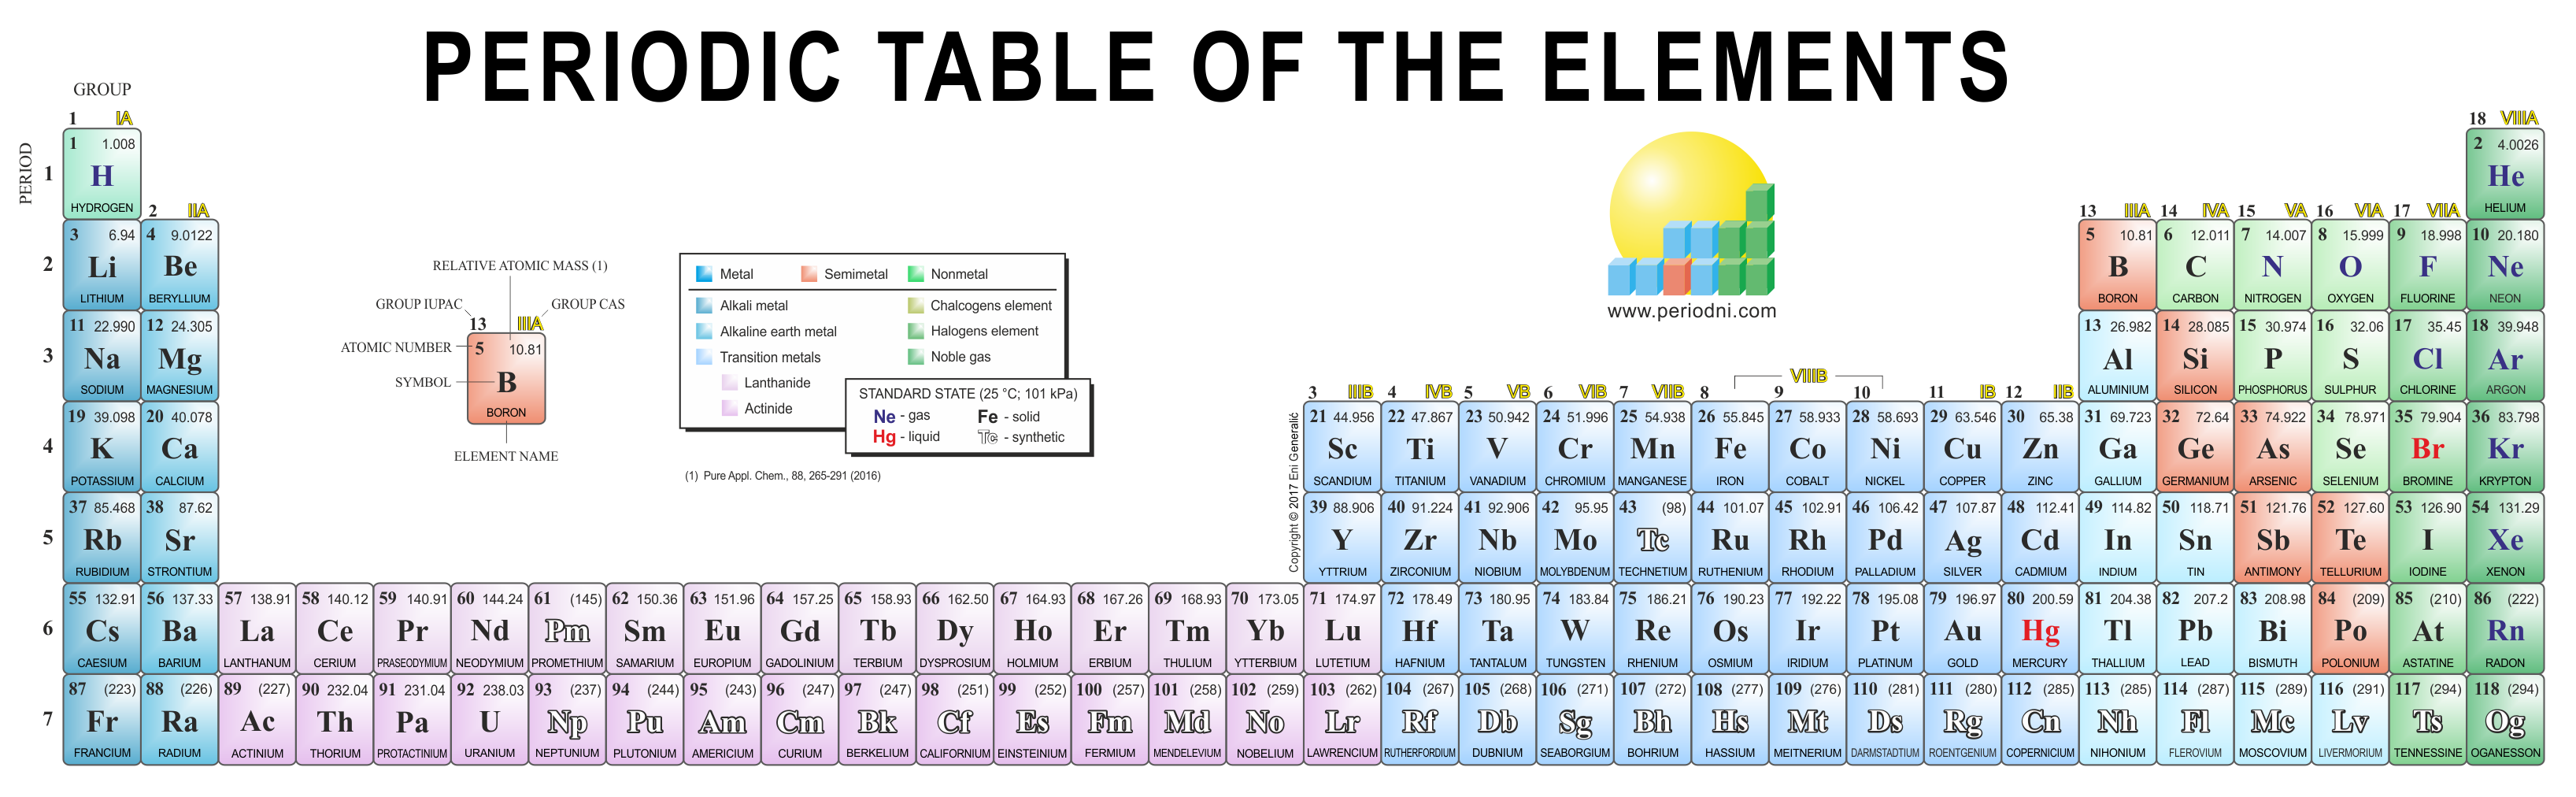 Chemistry images gallery 32 column periodic table gamestrikefo Image collections